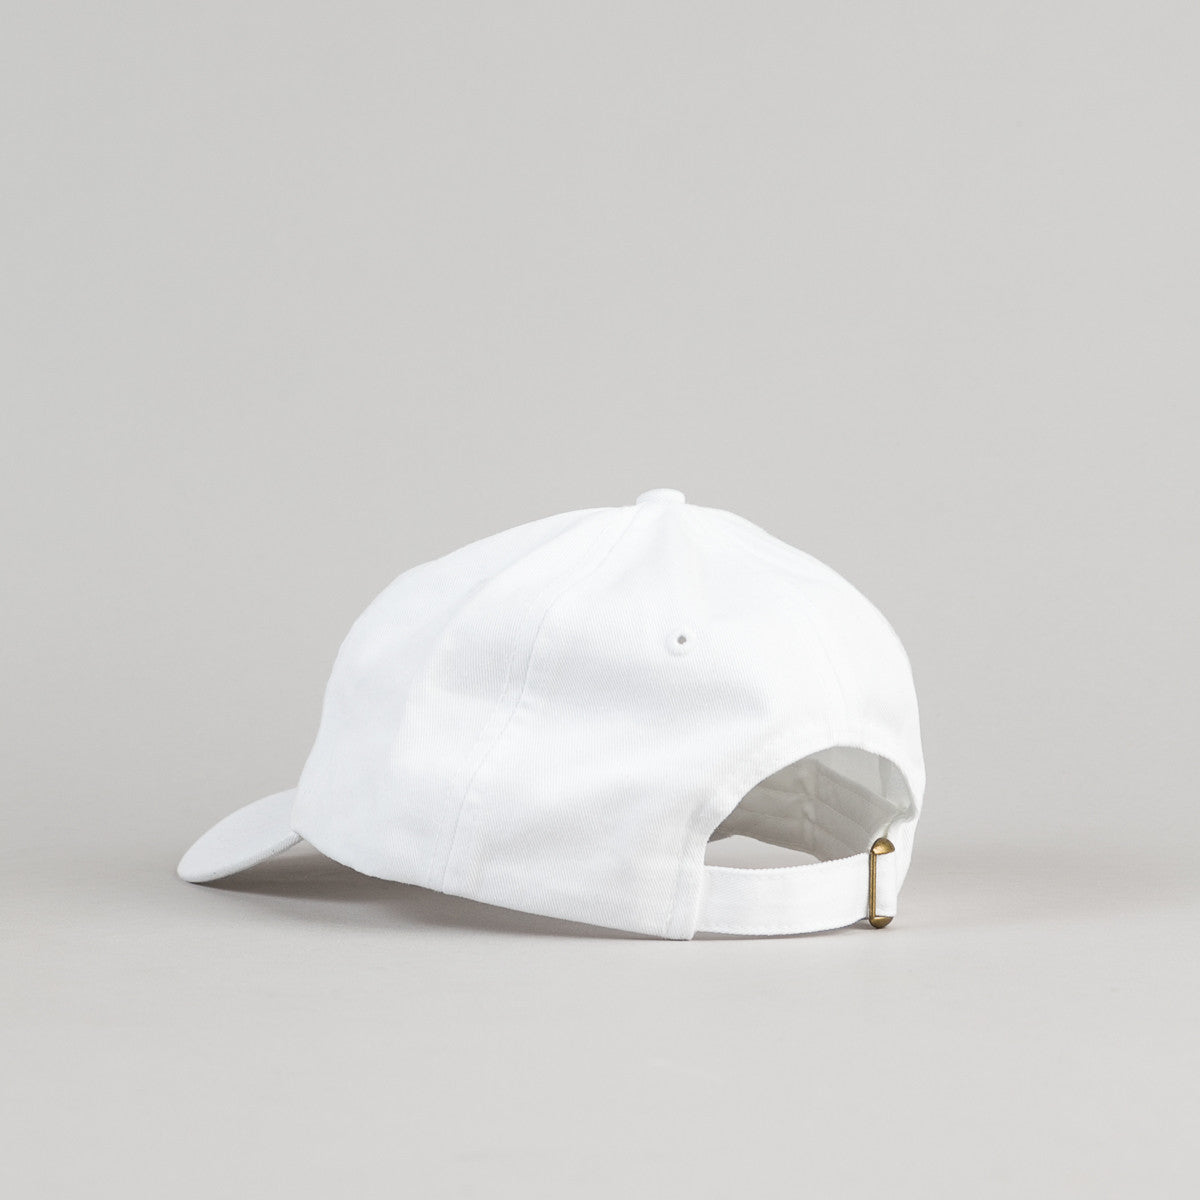 Pizza Skateboards Emoji Delivery Boy Cap - White